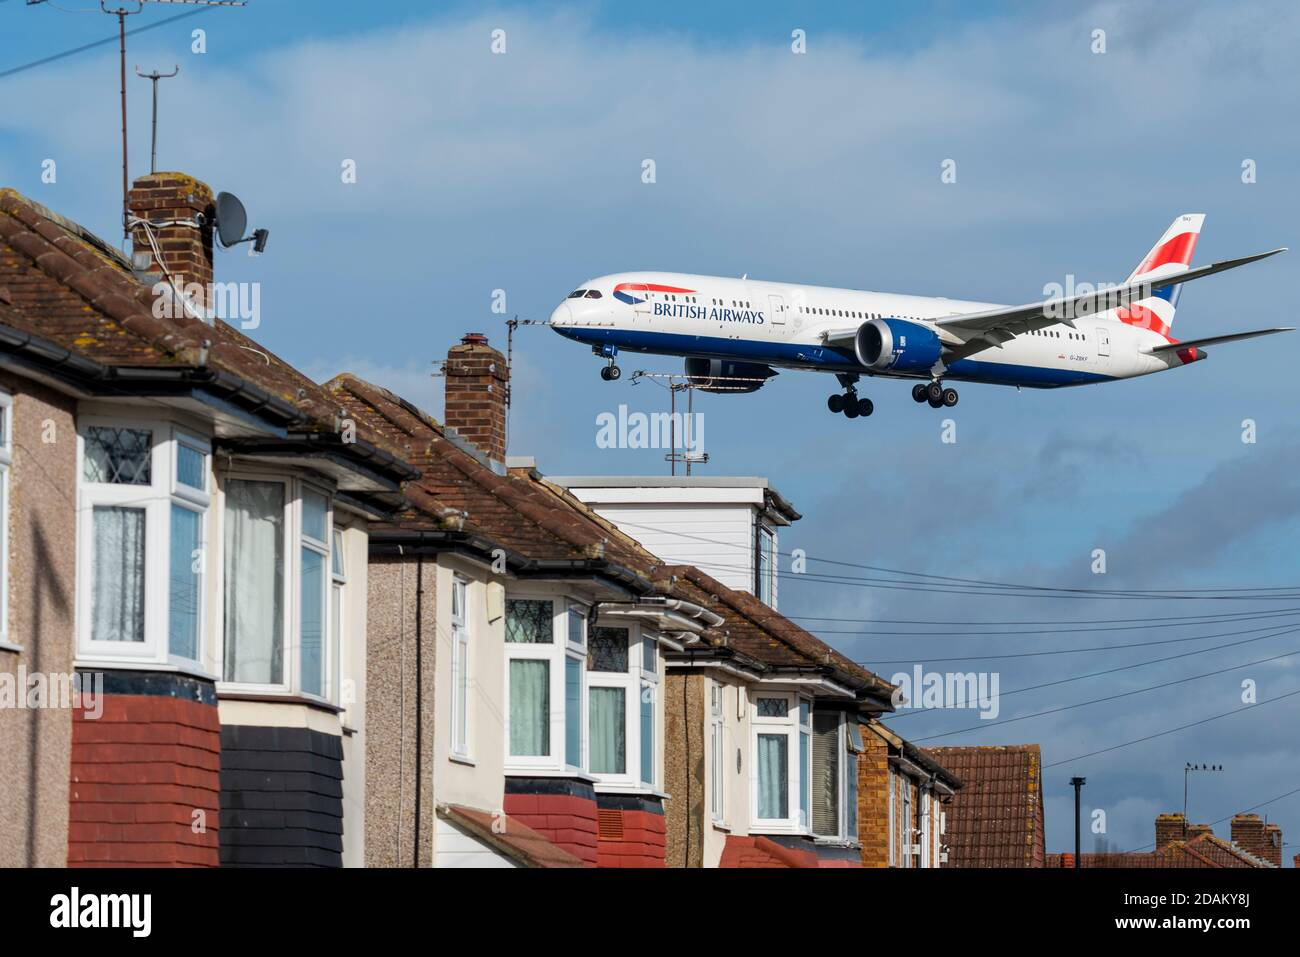 british-airways-jet-airliner-plane-on-approach-to-land-at-london-heathrow-airport-uk-over-roofs-of-homes-near-airport-properties-under-flightpath-2DAKY8J.jpg